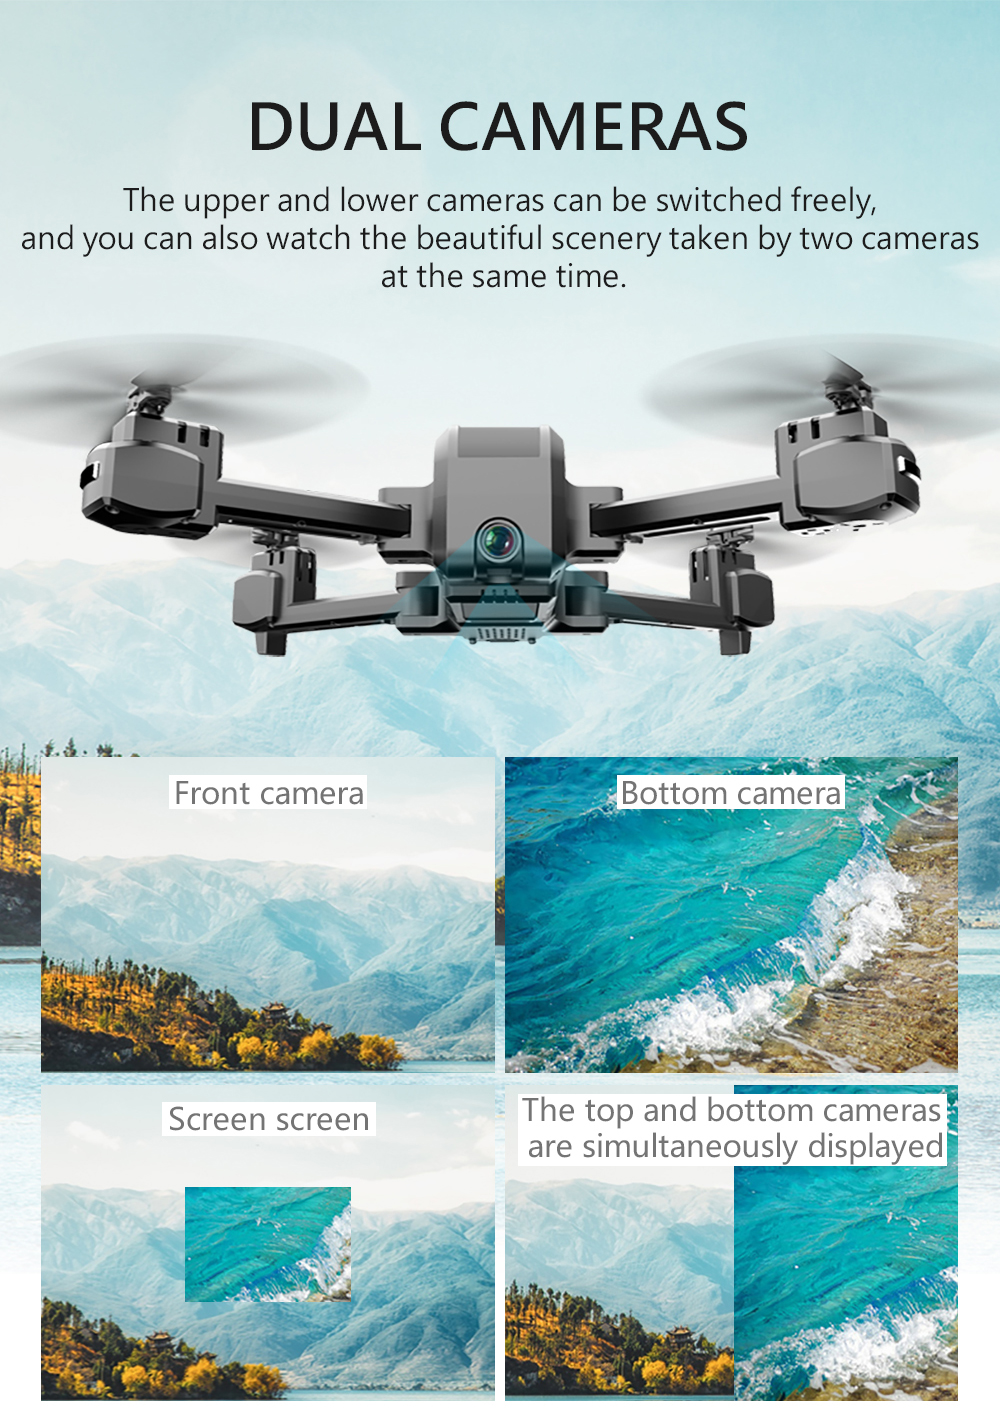 KF607 Quadcopter Optical Flow Pressure Altitude Hold WiFi Wide-angle Electric Adjustment Camera- Black 1080P Camera 2 Batteries